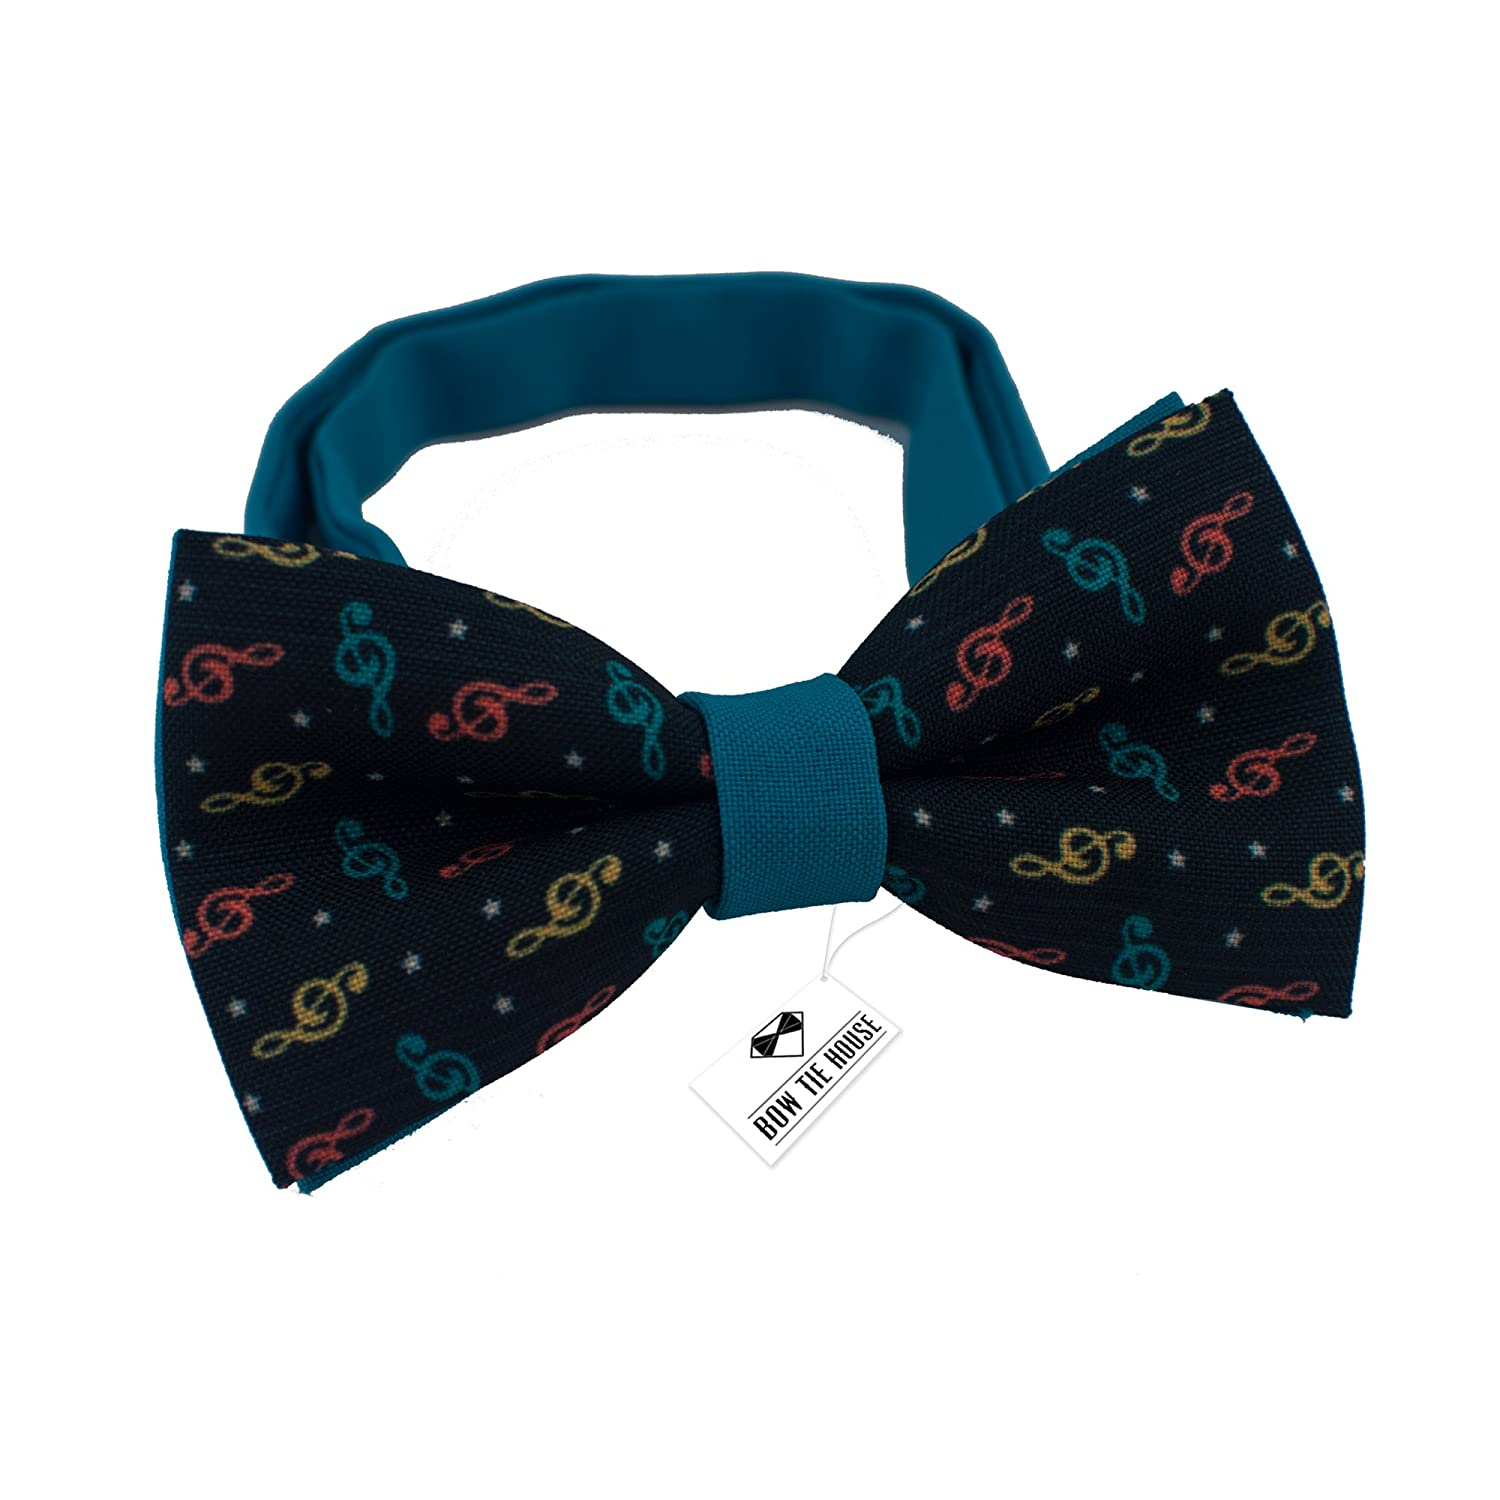 Bow Tie House Bright Purple bow tie with cats pre-tied shape unisex pattern